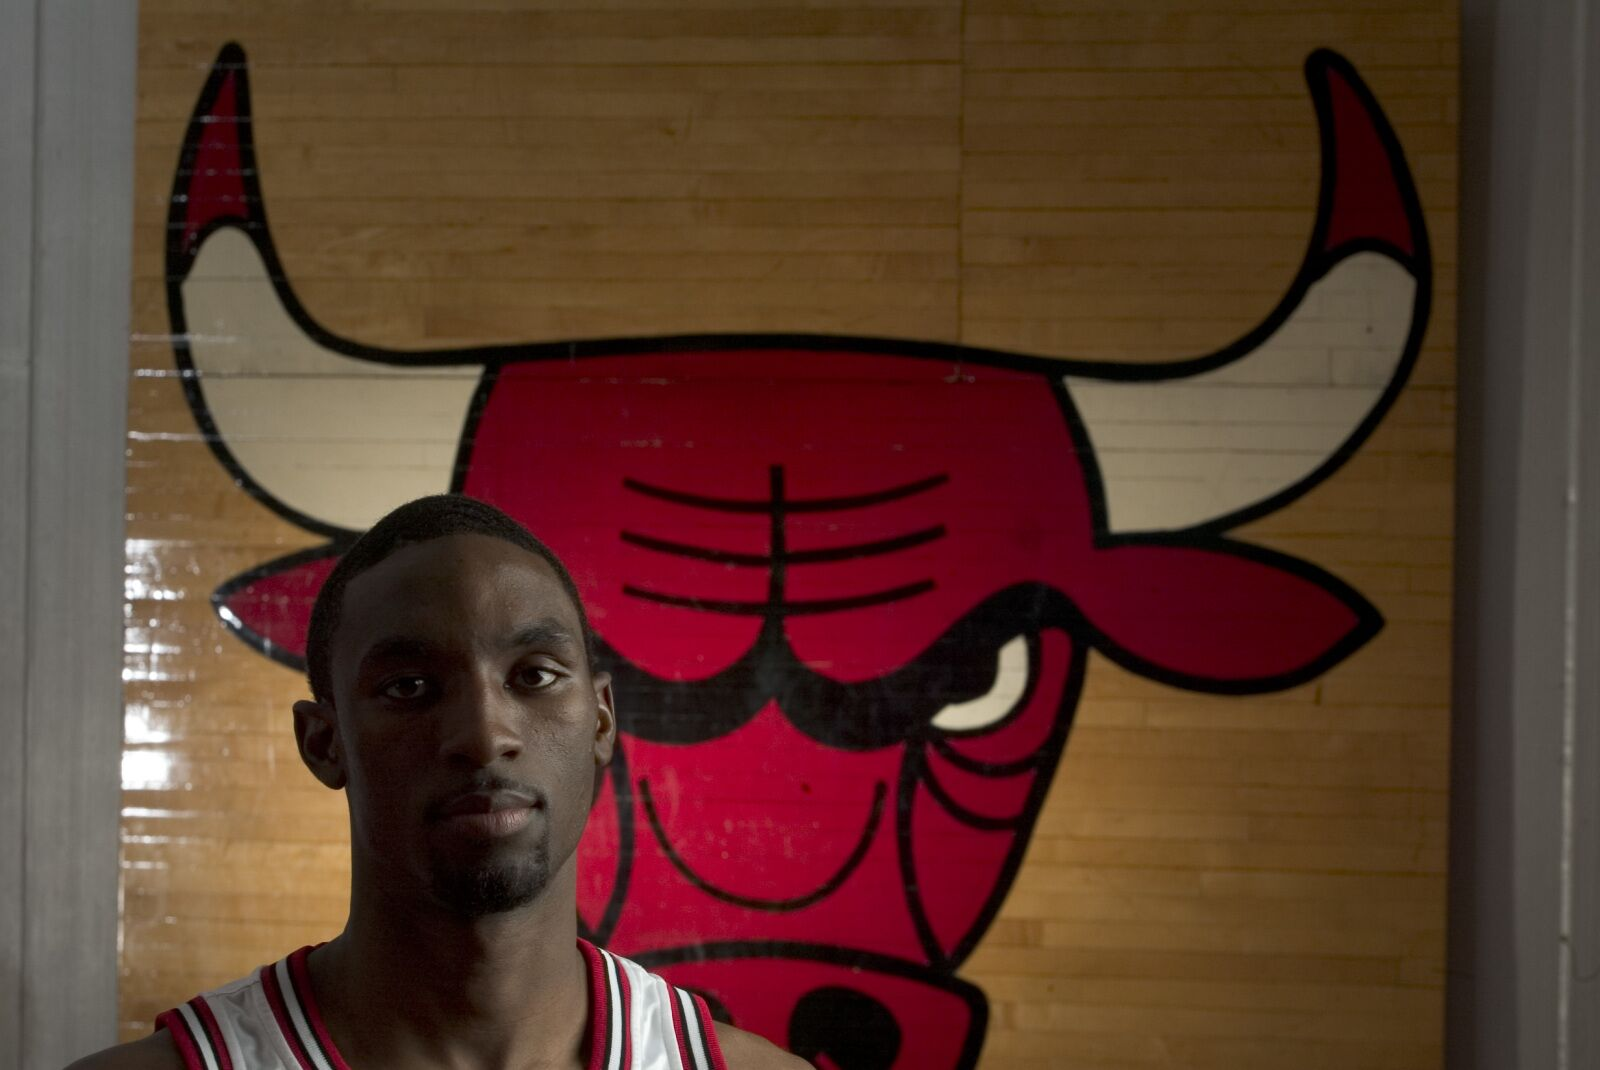 Chicago Bulls: Ben Gordon attends practice as a special guest